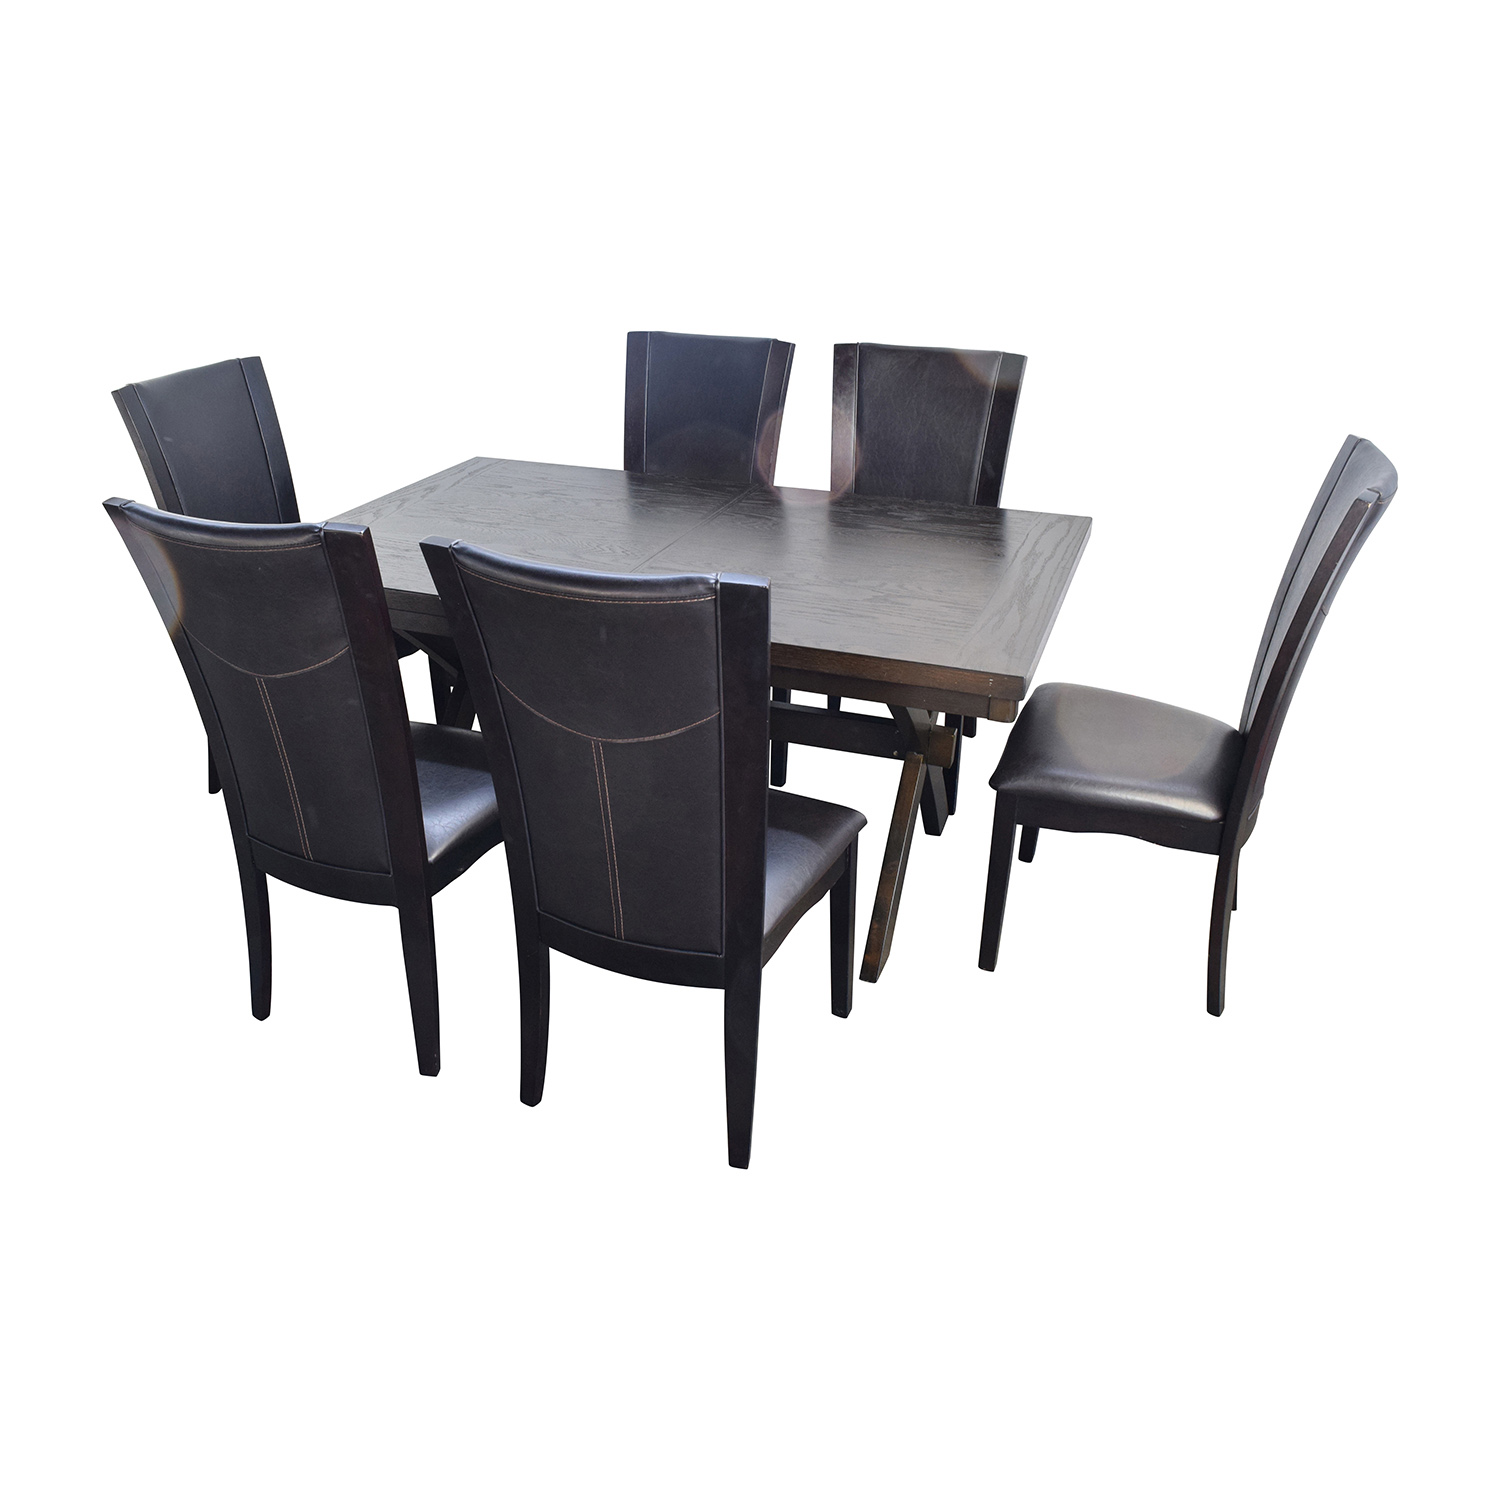 buy Raymour and Flanigan Raymour & Flanigan Wood and Leather Dining Set online